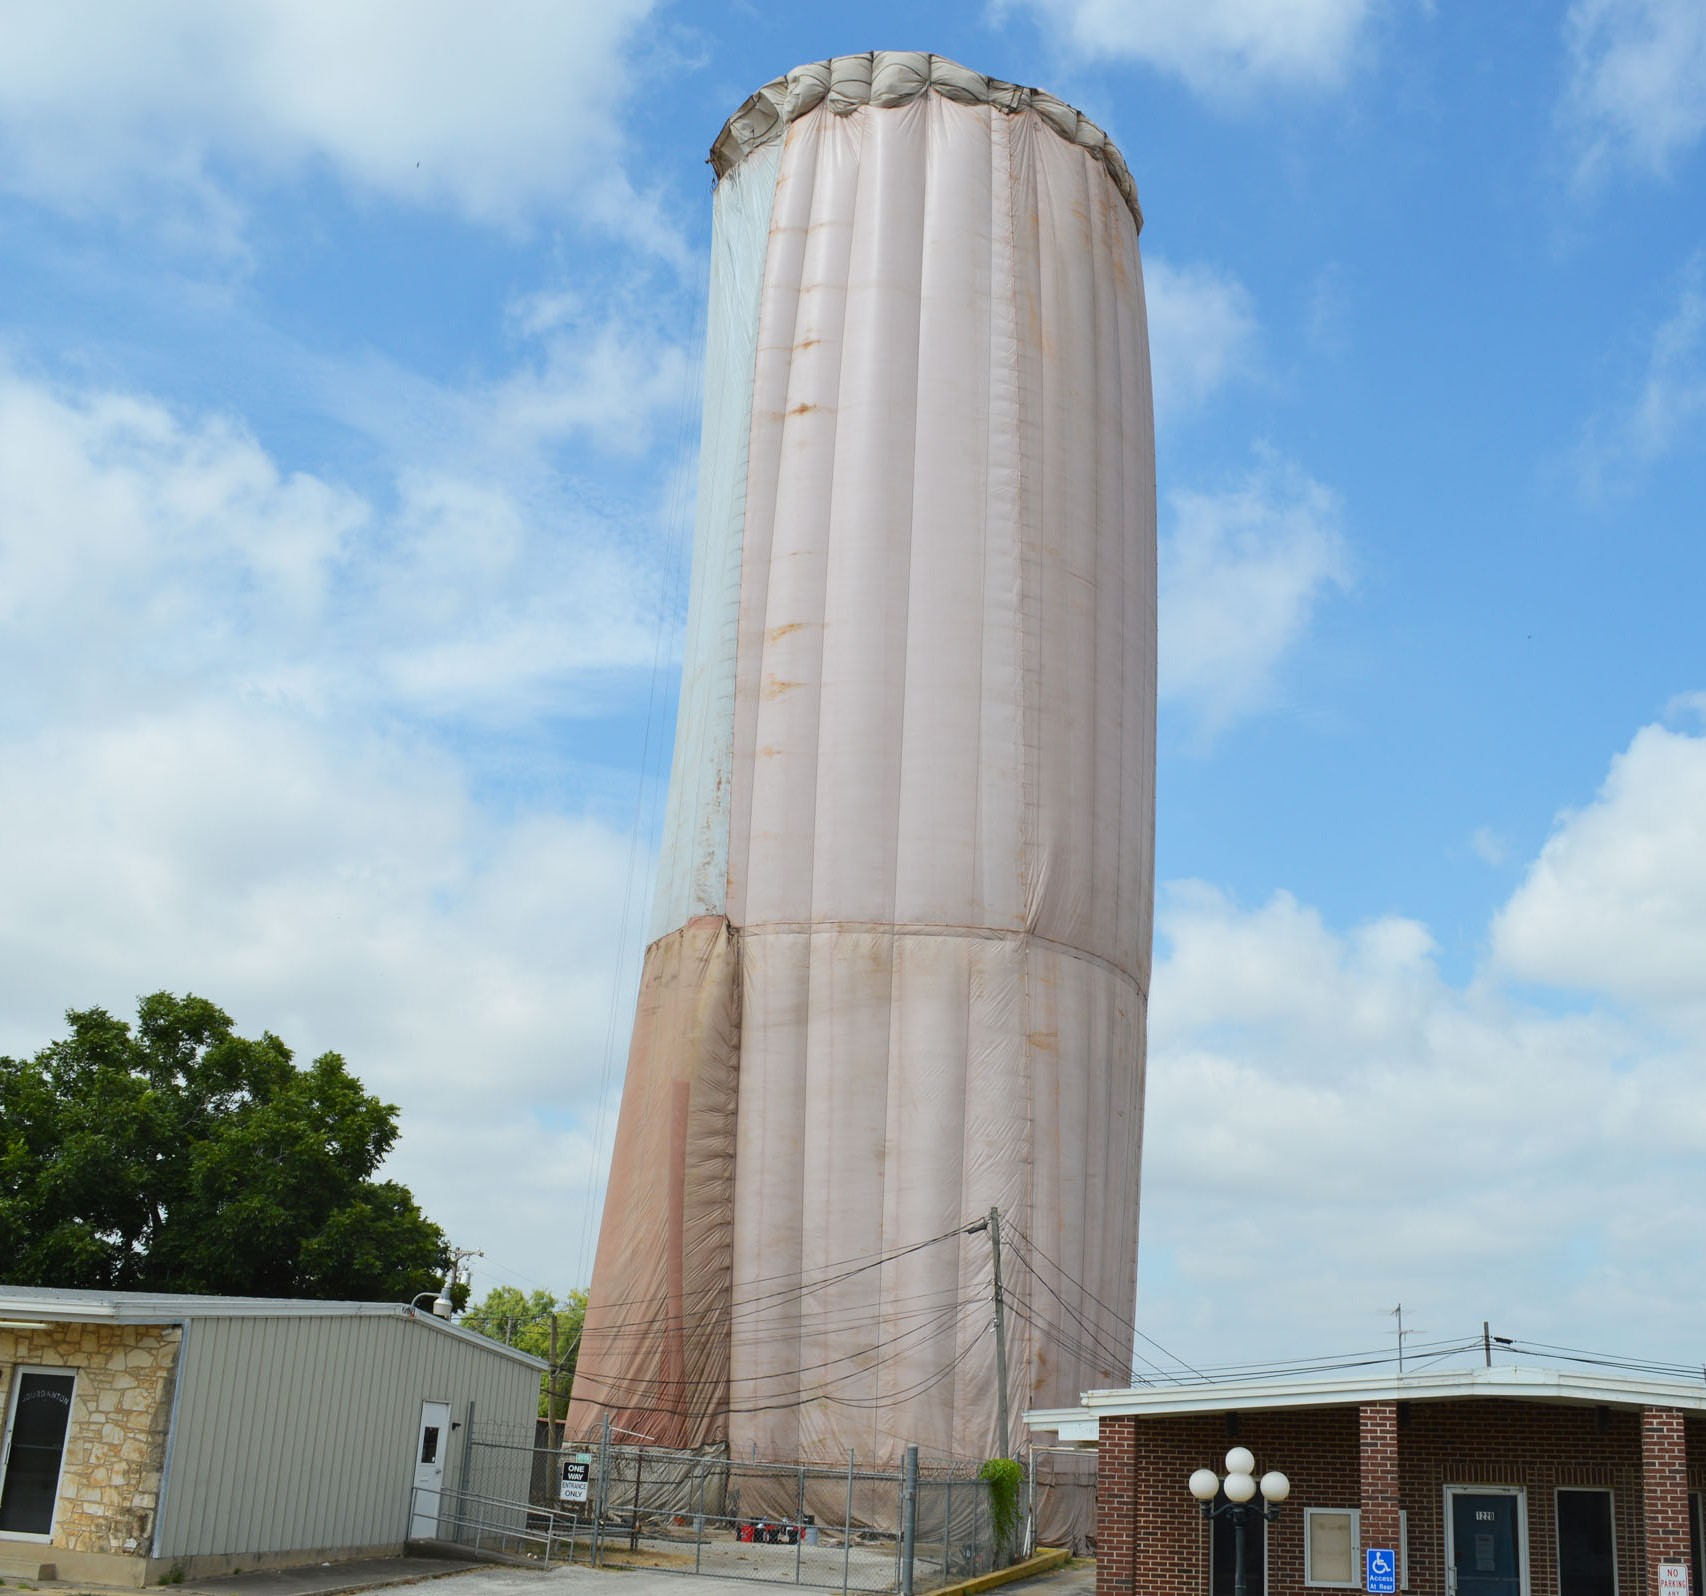 The water tower in Jourdanton is getting a facelift. It is cloaked during the sandblasting - inside and out - and a new exterior paint job will be performed as well. The projecto started two weeks ago and should be completed sometime in September. The maintenance is part of a $400,000 grant that the city received. A bonus - new LED lights will adorn the cat walk around the tank to promote winning results of JISD UIL varsity events.